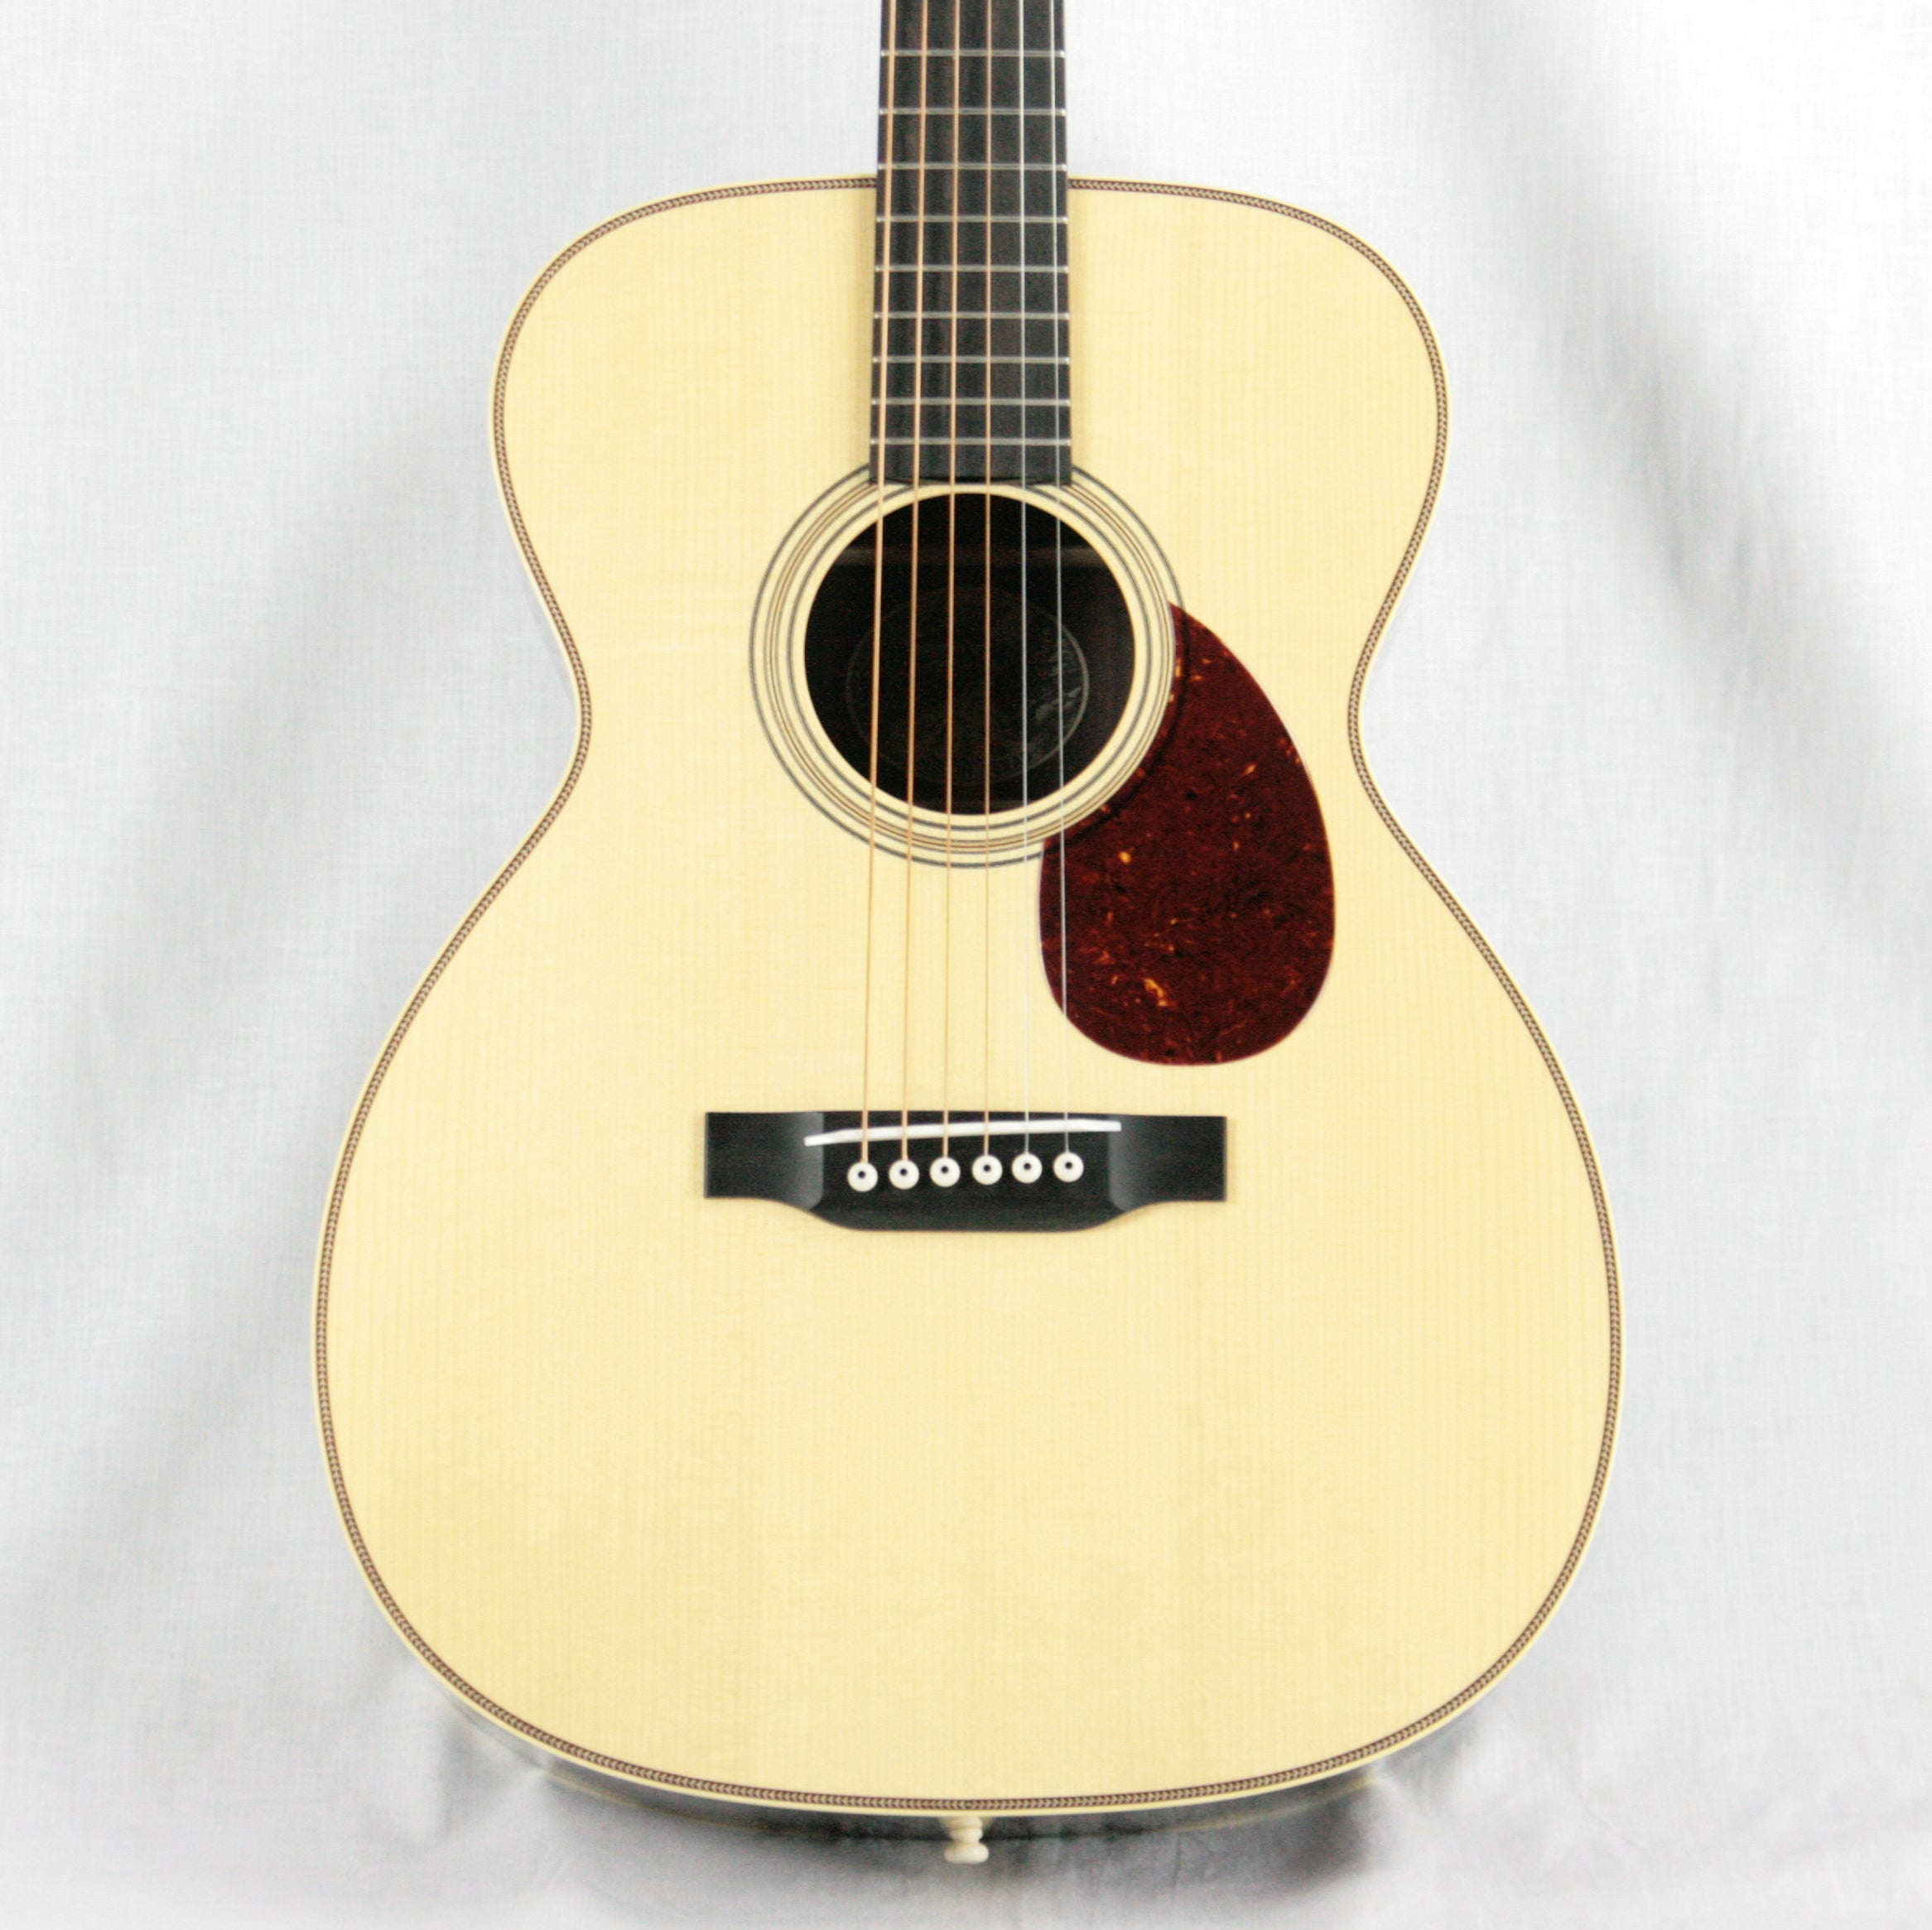 MINT 2018 Collings OM2HA-T Adirondack Spruce Traditional! Rosewood OM2H OM